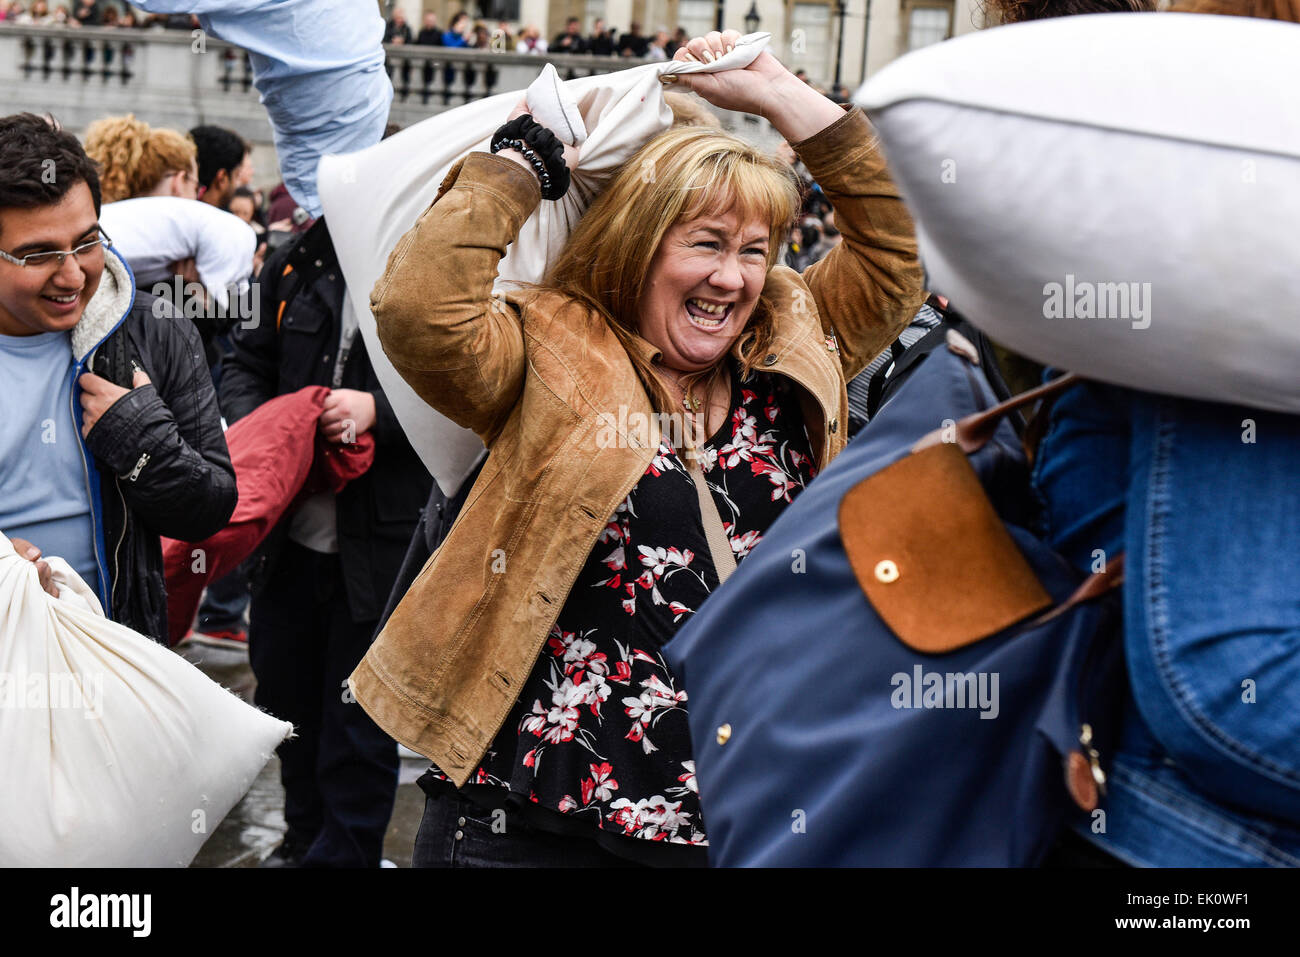 London, UK. 4th April, 2015. In Trafalgar Square thousands of pillow fighters battered each other until the feathers - Stock Image